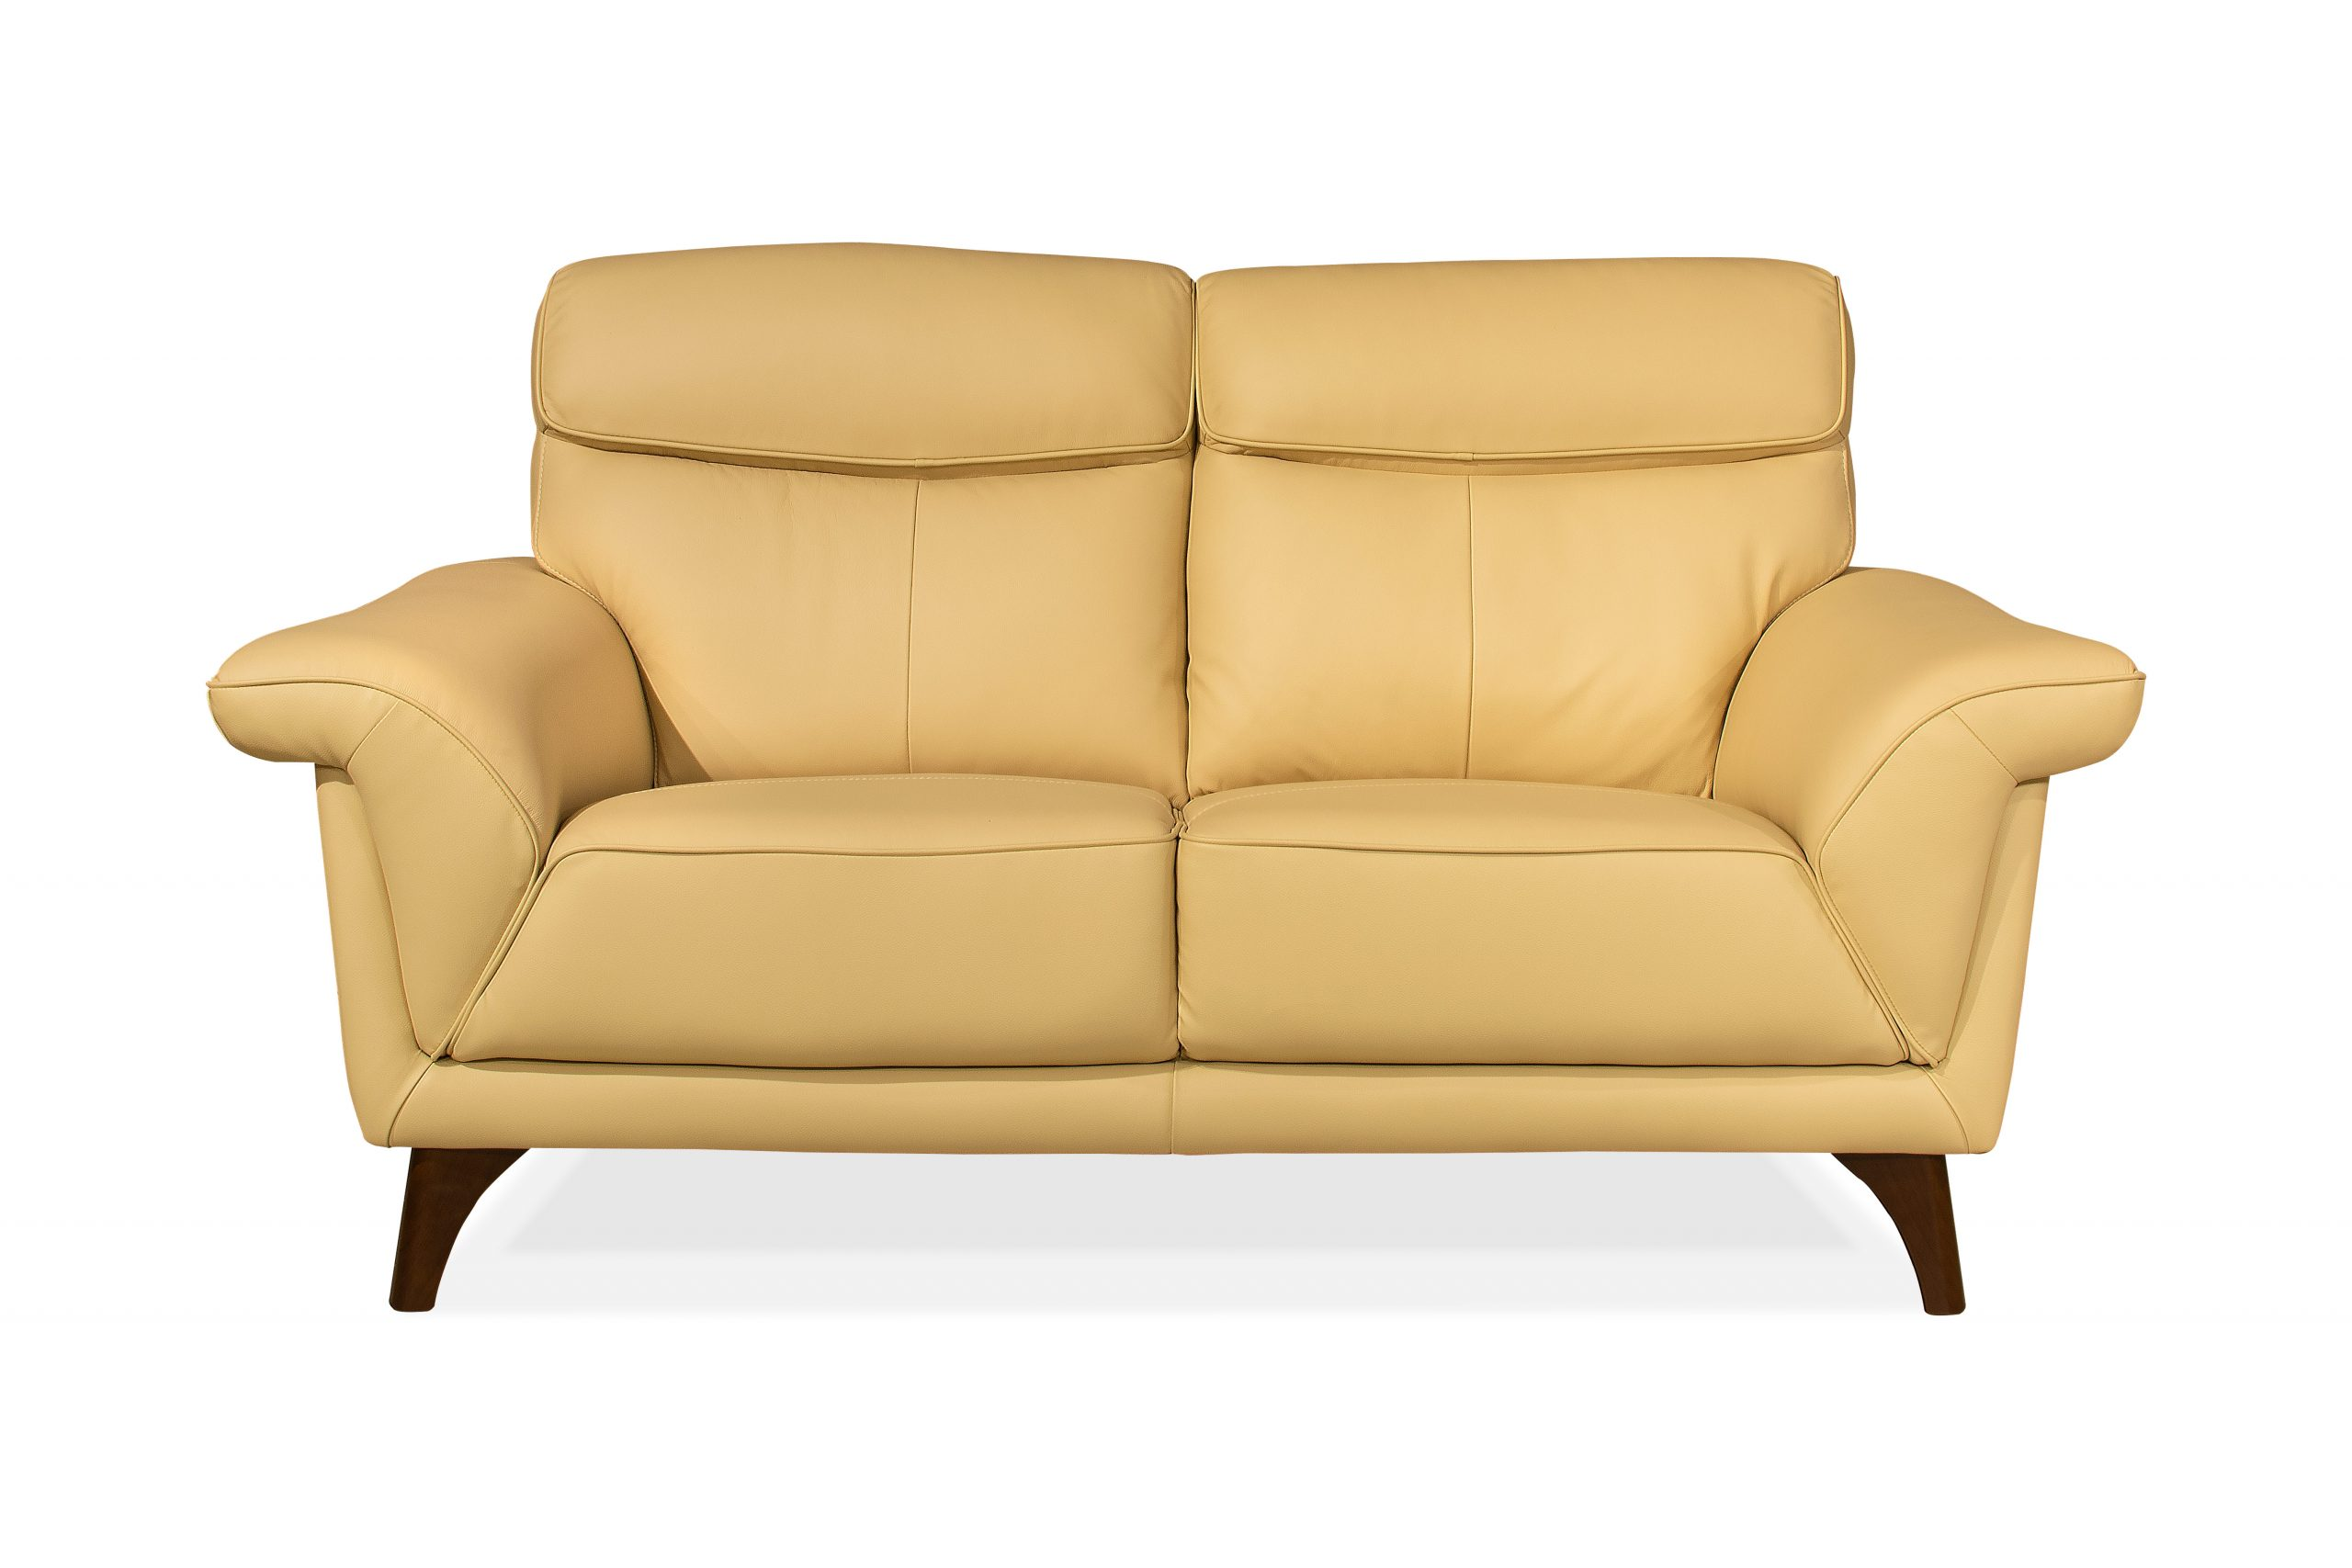 Buy Lure Leather Sofa Couch Furniture From Cherrypickindia Bangalore